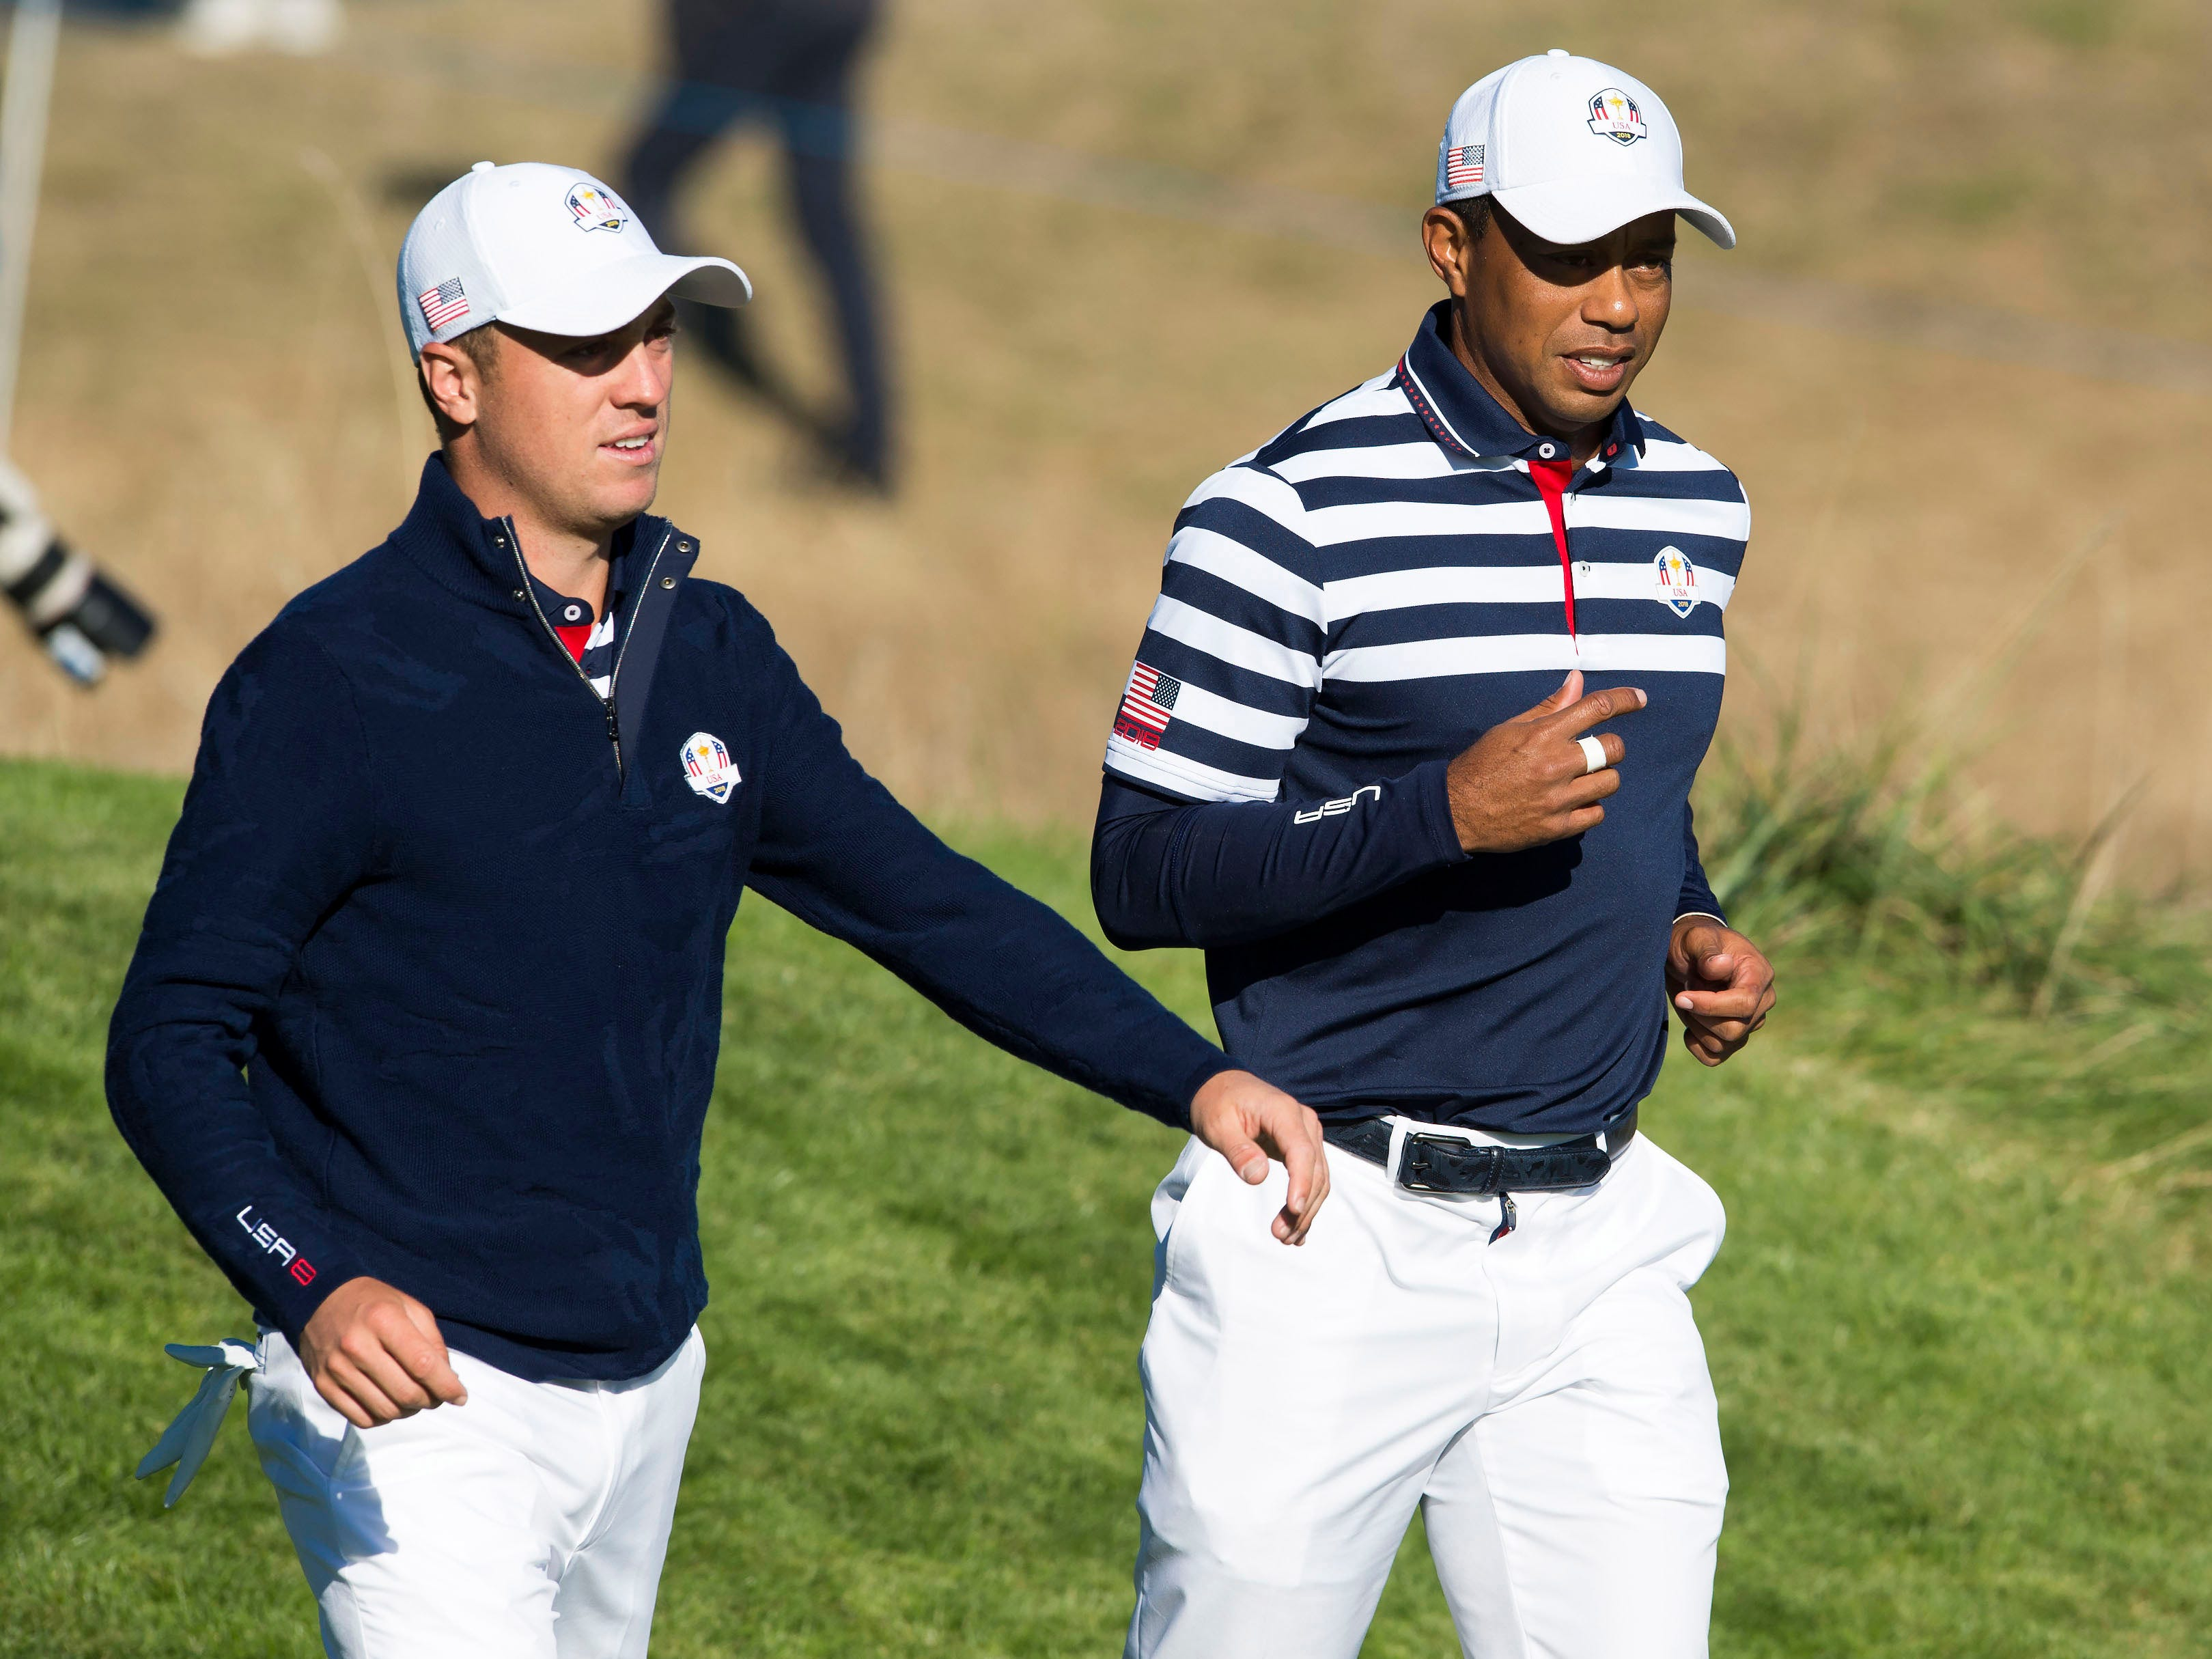 Justin Thomas and Tiger Woods (right) walk from the 10th tee during a Ryder Cup practice.